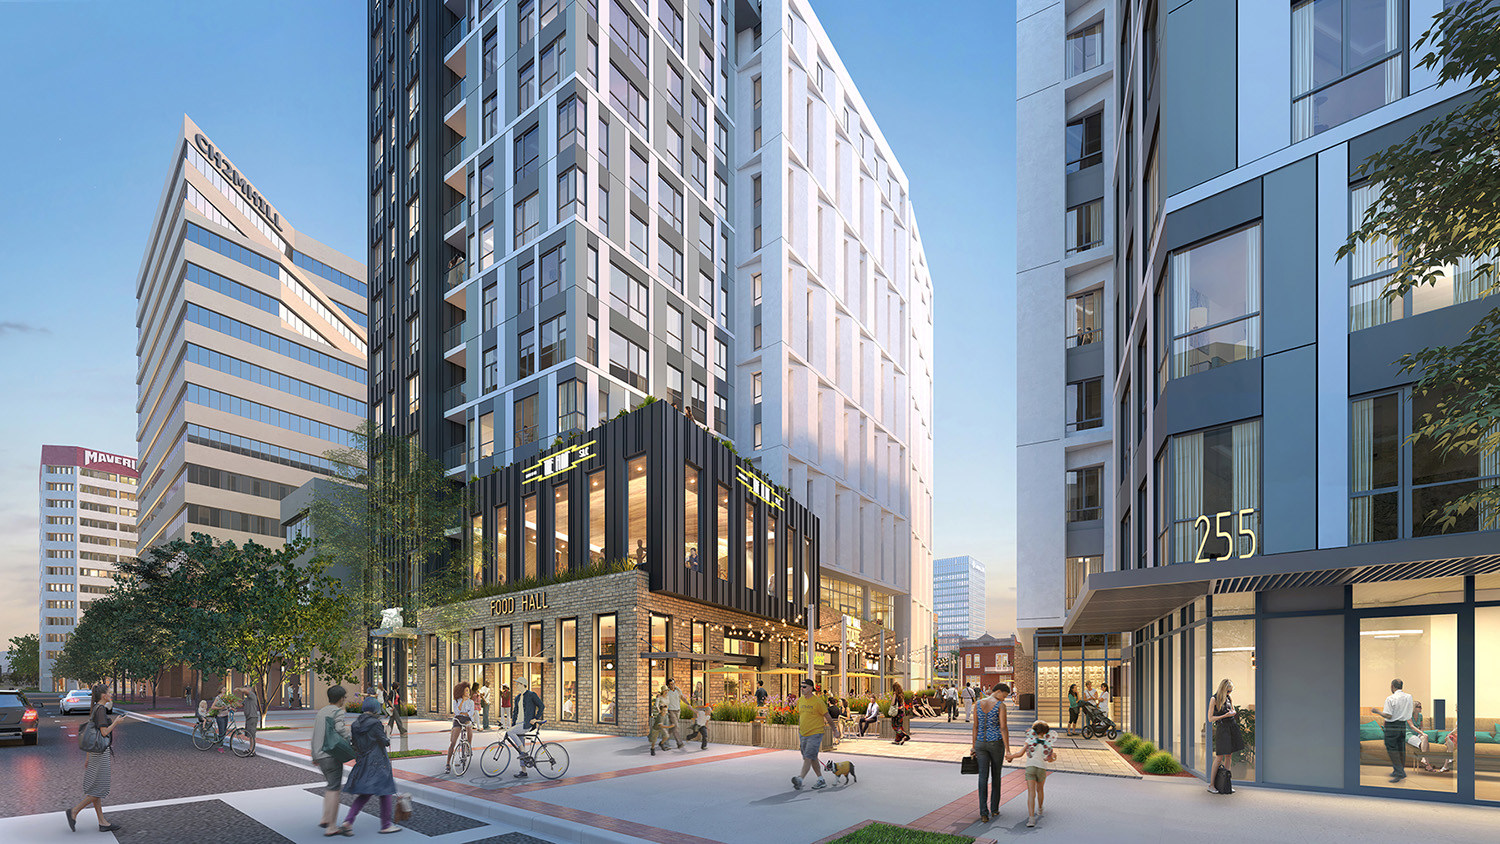 New Mixed-Use, Mixed-Income Development Under Construction Will Bring New Vitality to Downtown Salt Lake City